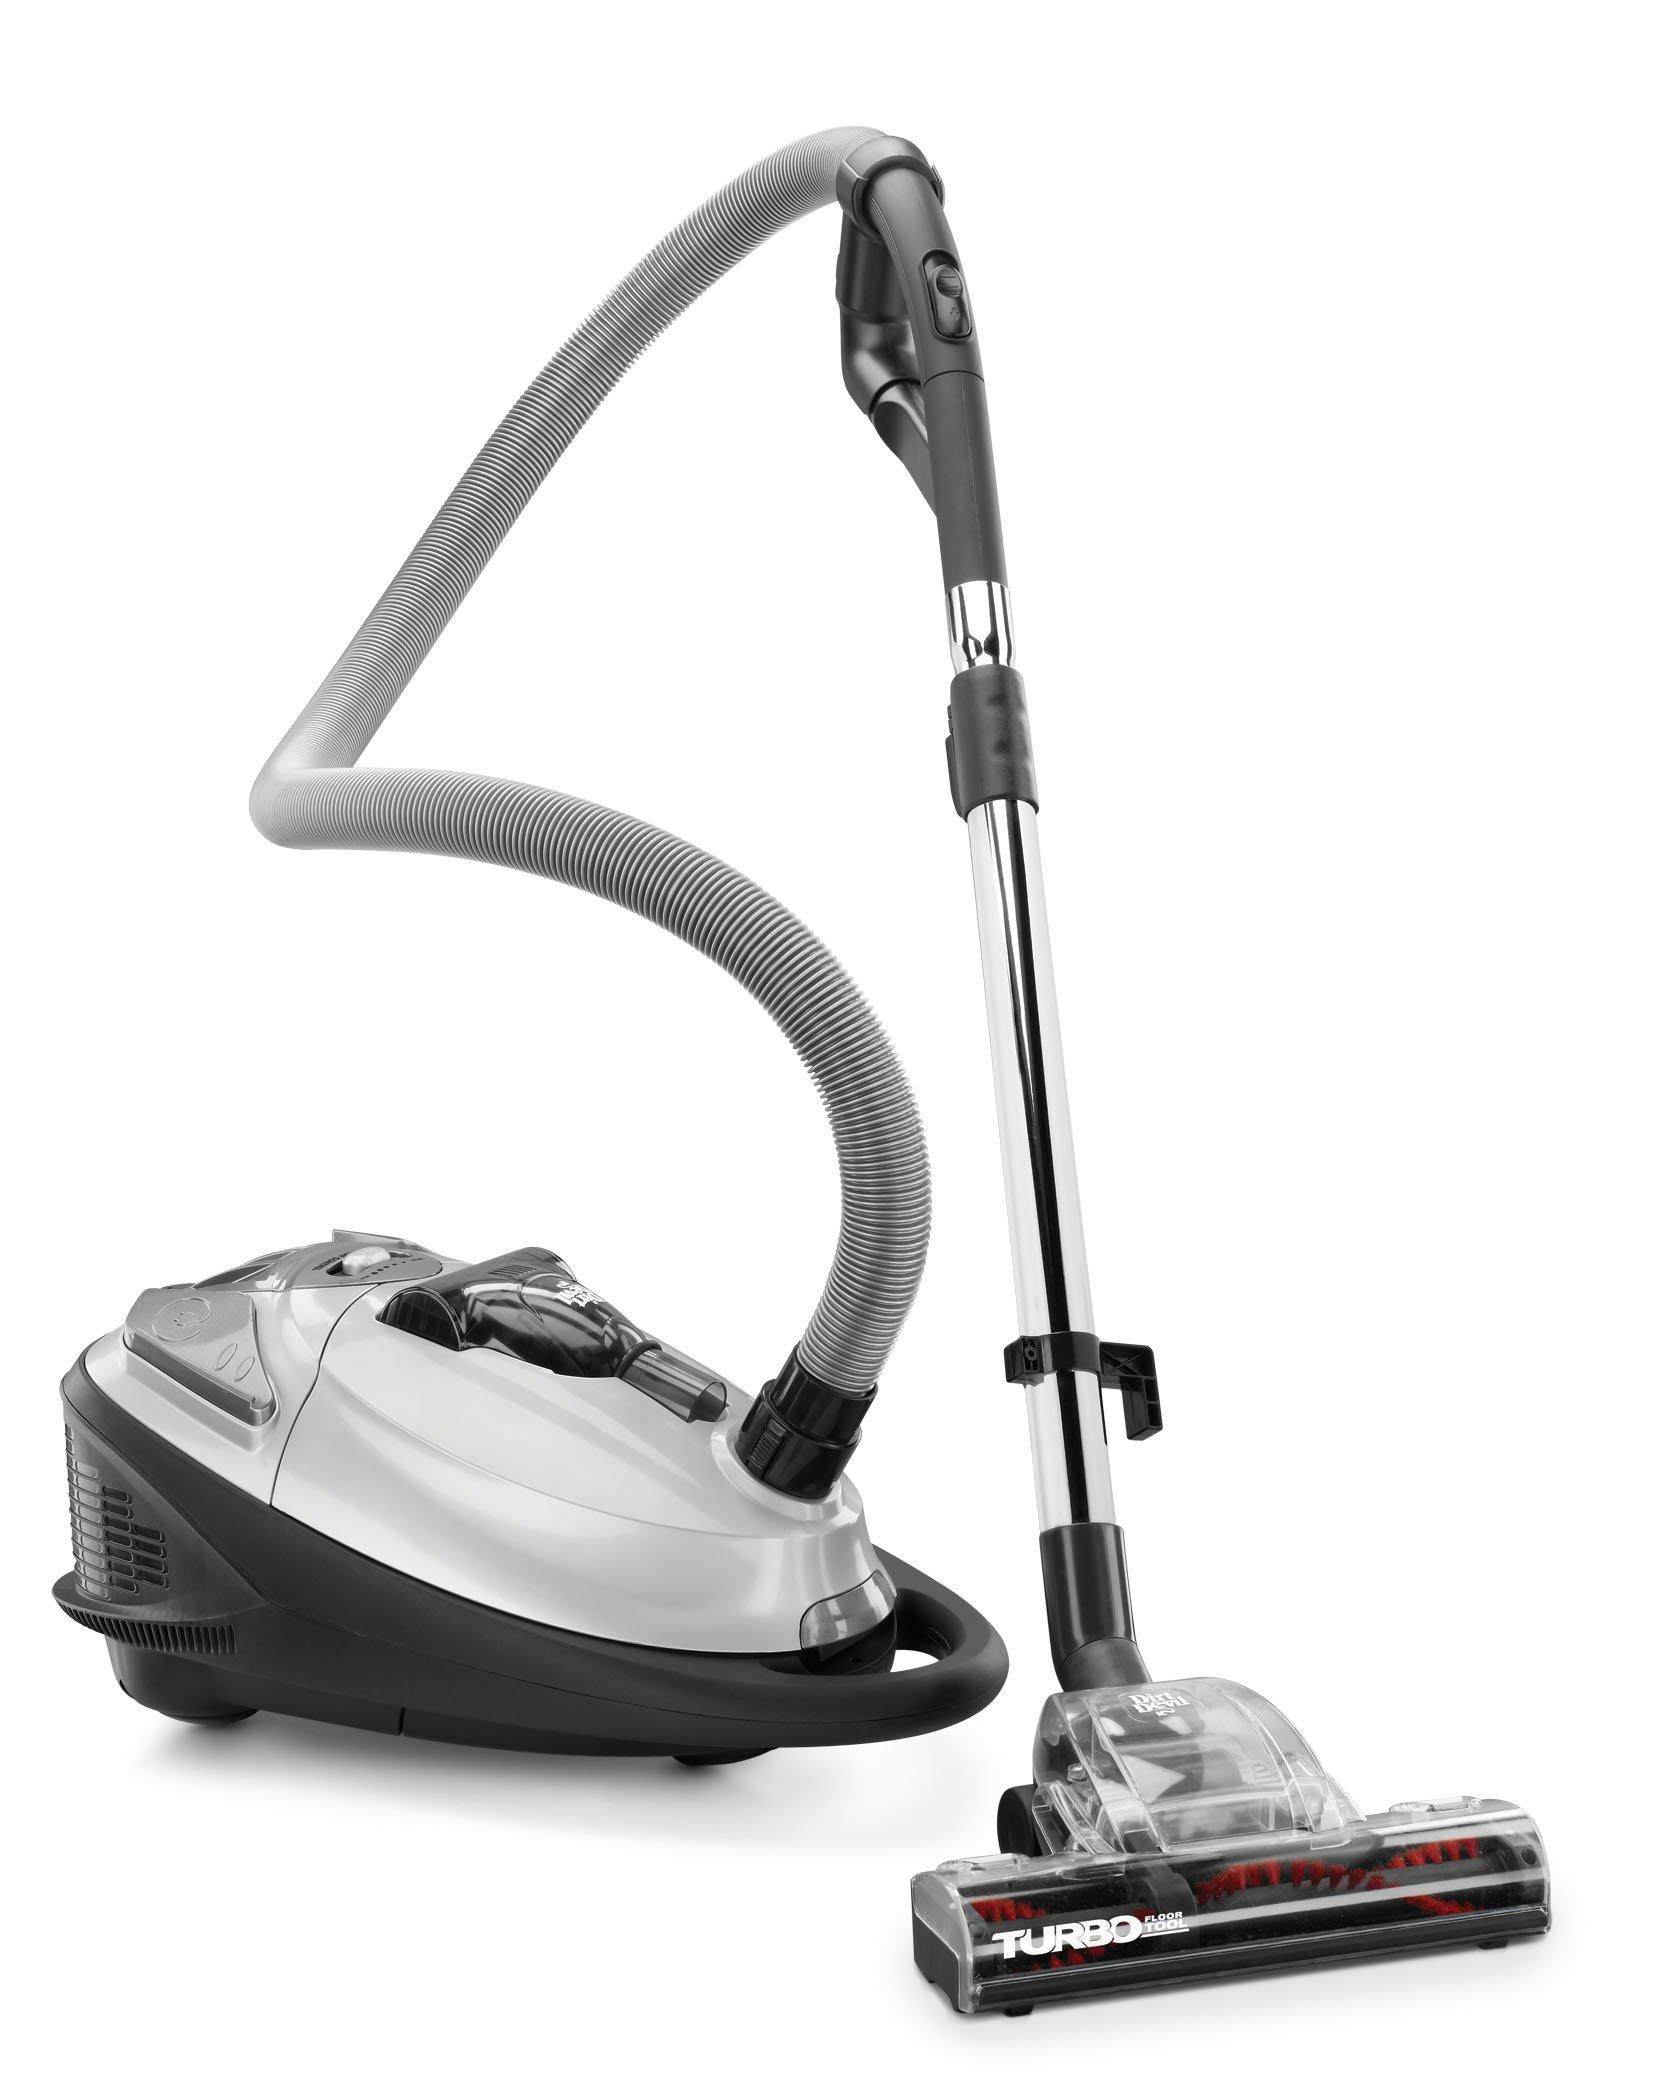 Turbo Plus Bagged Canister Vacuum1